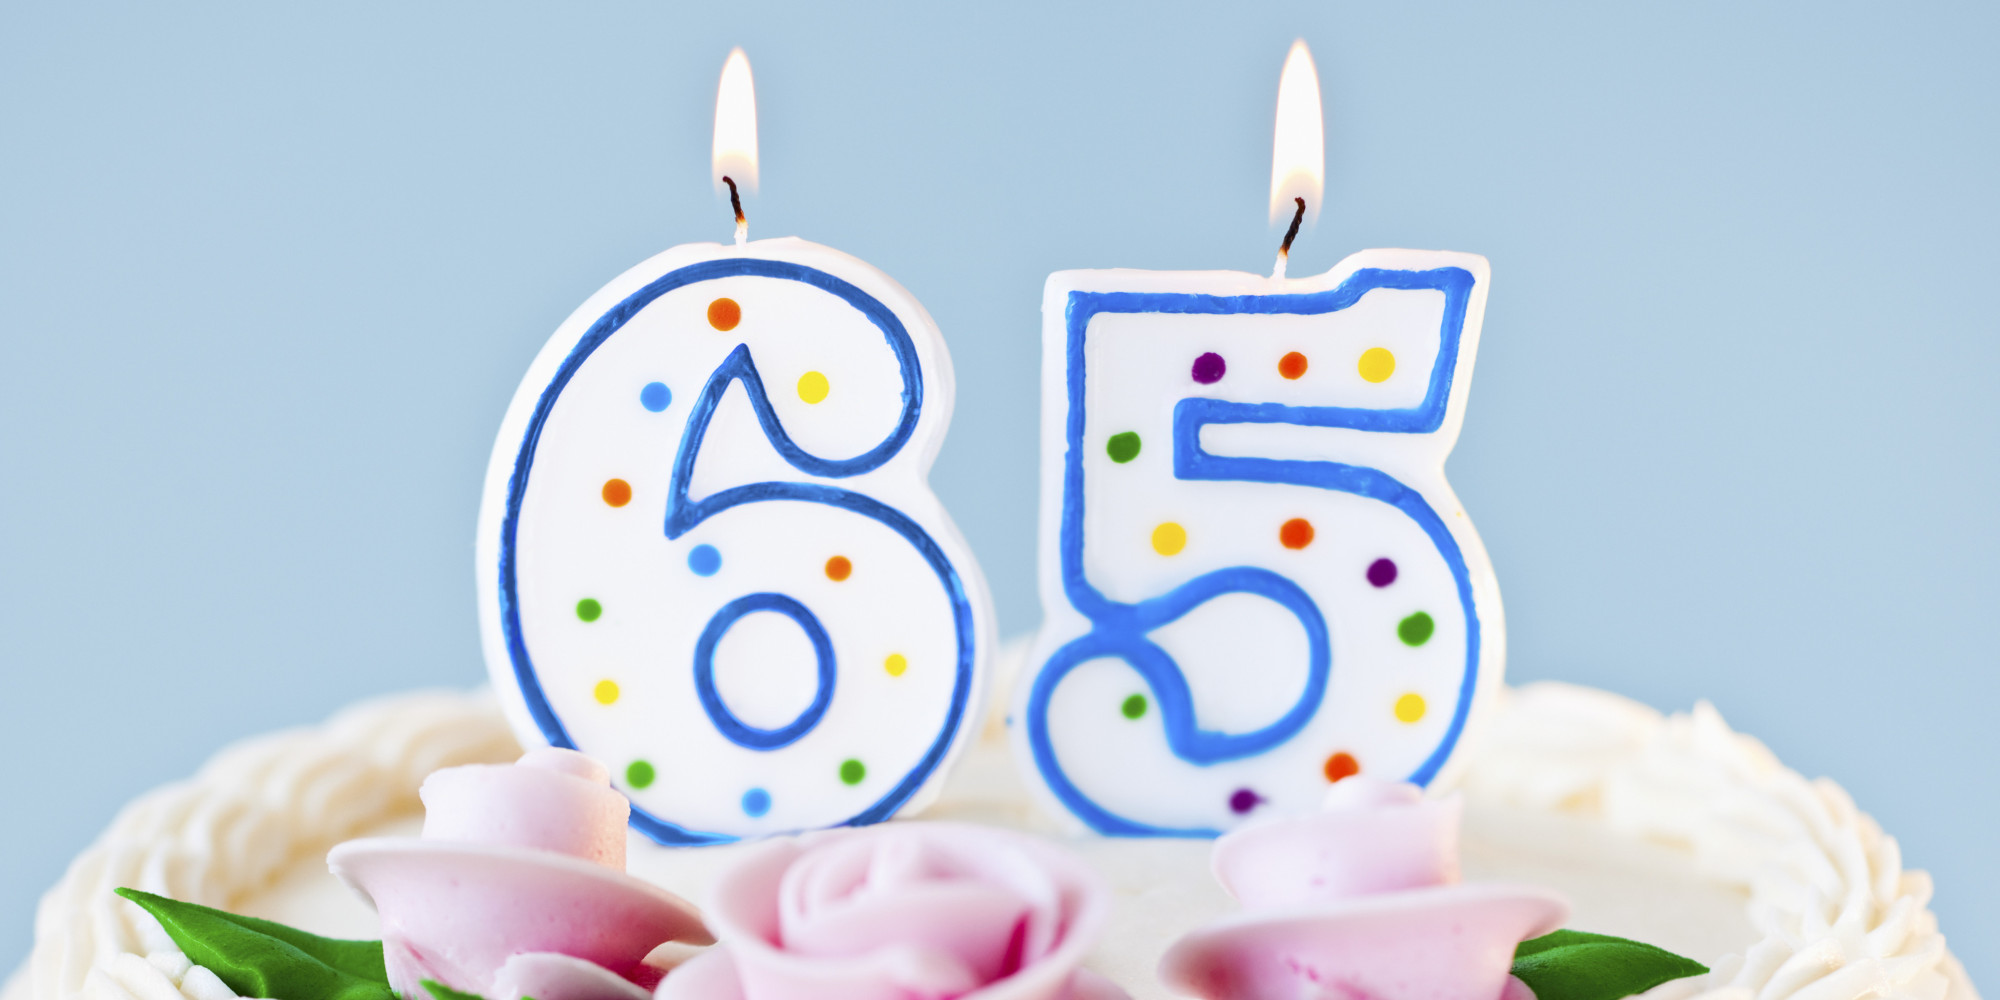 65th Birthday Cake Man Thoughts On Turning 65 Huffpost